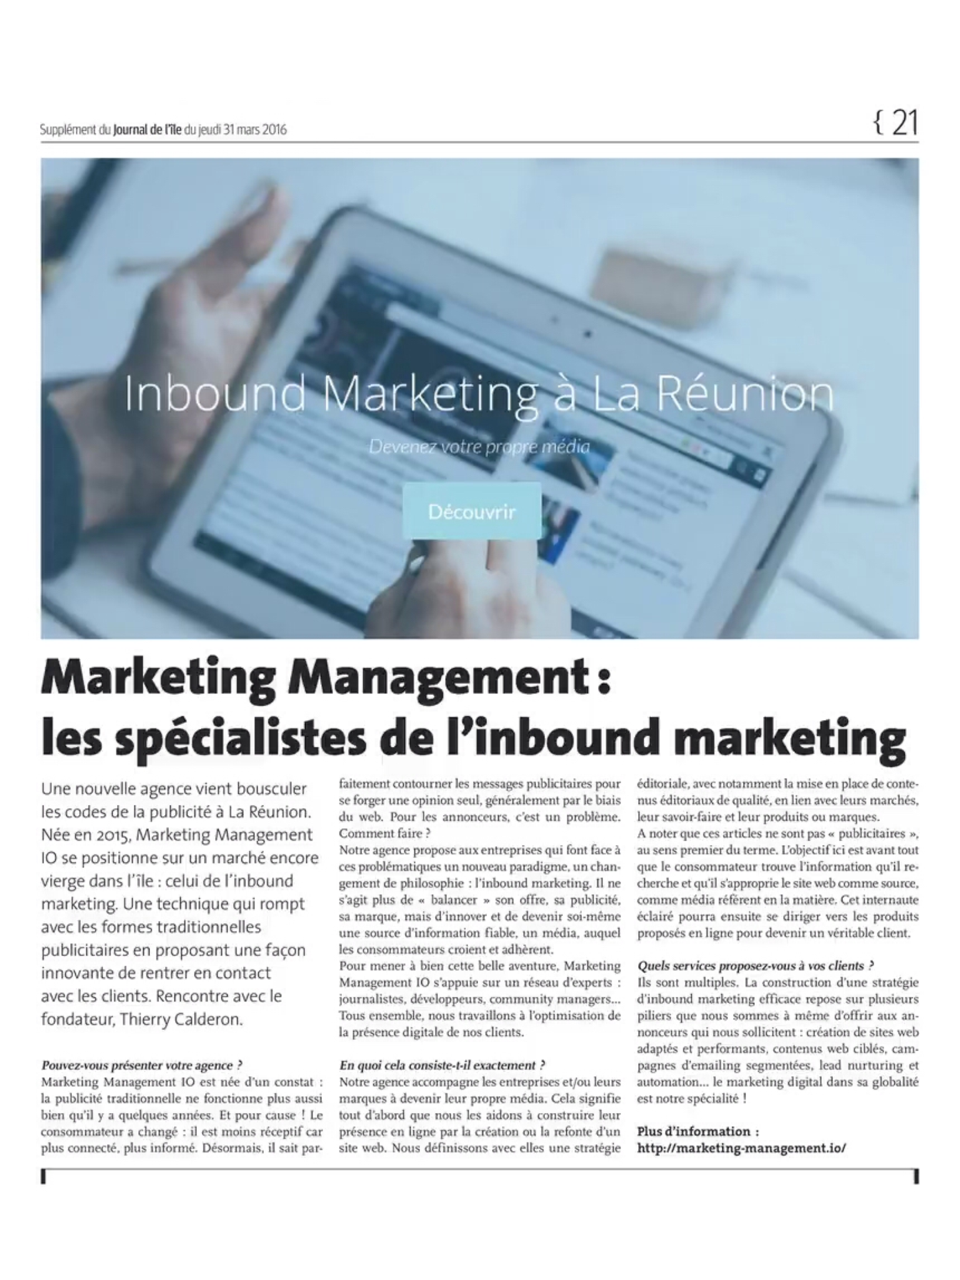 mmio-agence-specialiste-inbound-marketing